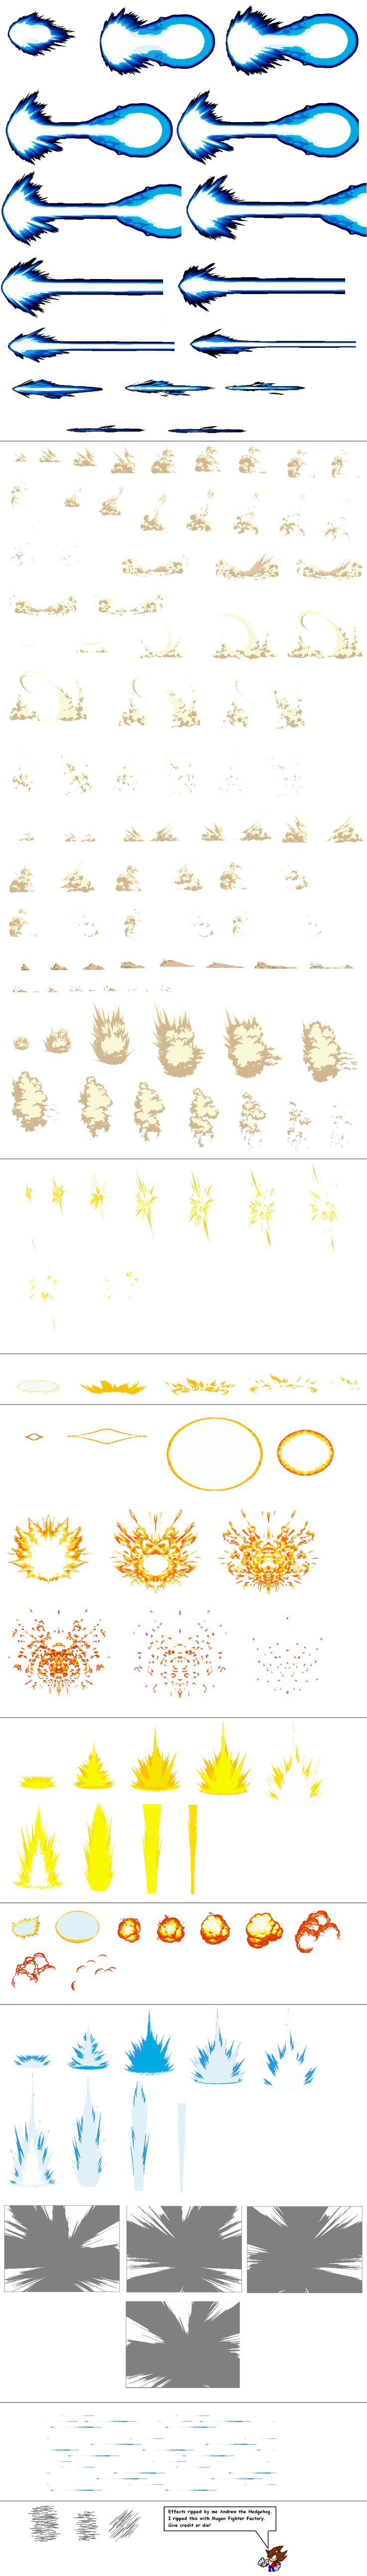 Ultimate Effects Sheet 1 by Xypter on deviantART ★ || CHARACTER DESIGN REFERENCES™ (https://www.facebook.com/CharacterDesignReferences & https://www.pinterest.com/characterdesigh) • Love Character Design? Join the #CDChallenge (link→ https://www.facebook.com/groups/CharacterDesignChallenge) Share your unique vision of a theme, promote your art in a community of over 50.000 artists! || ★